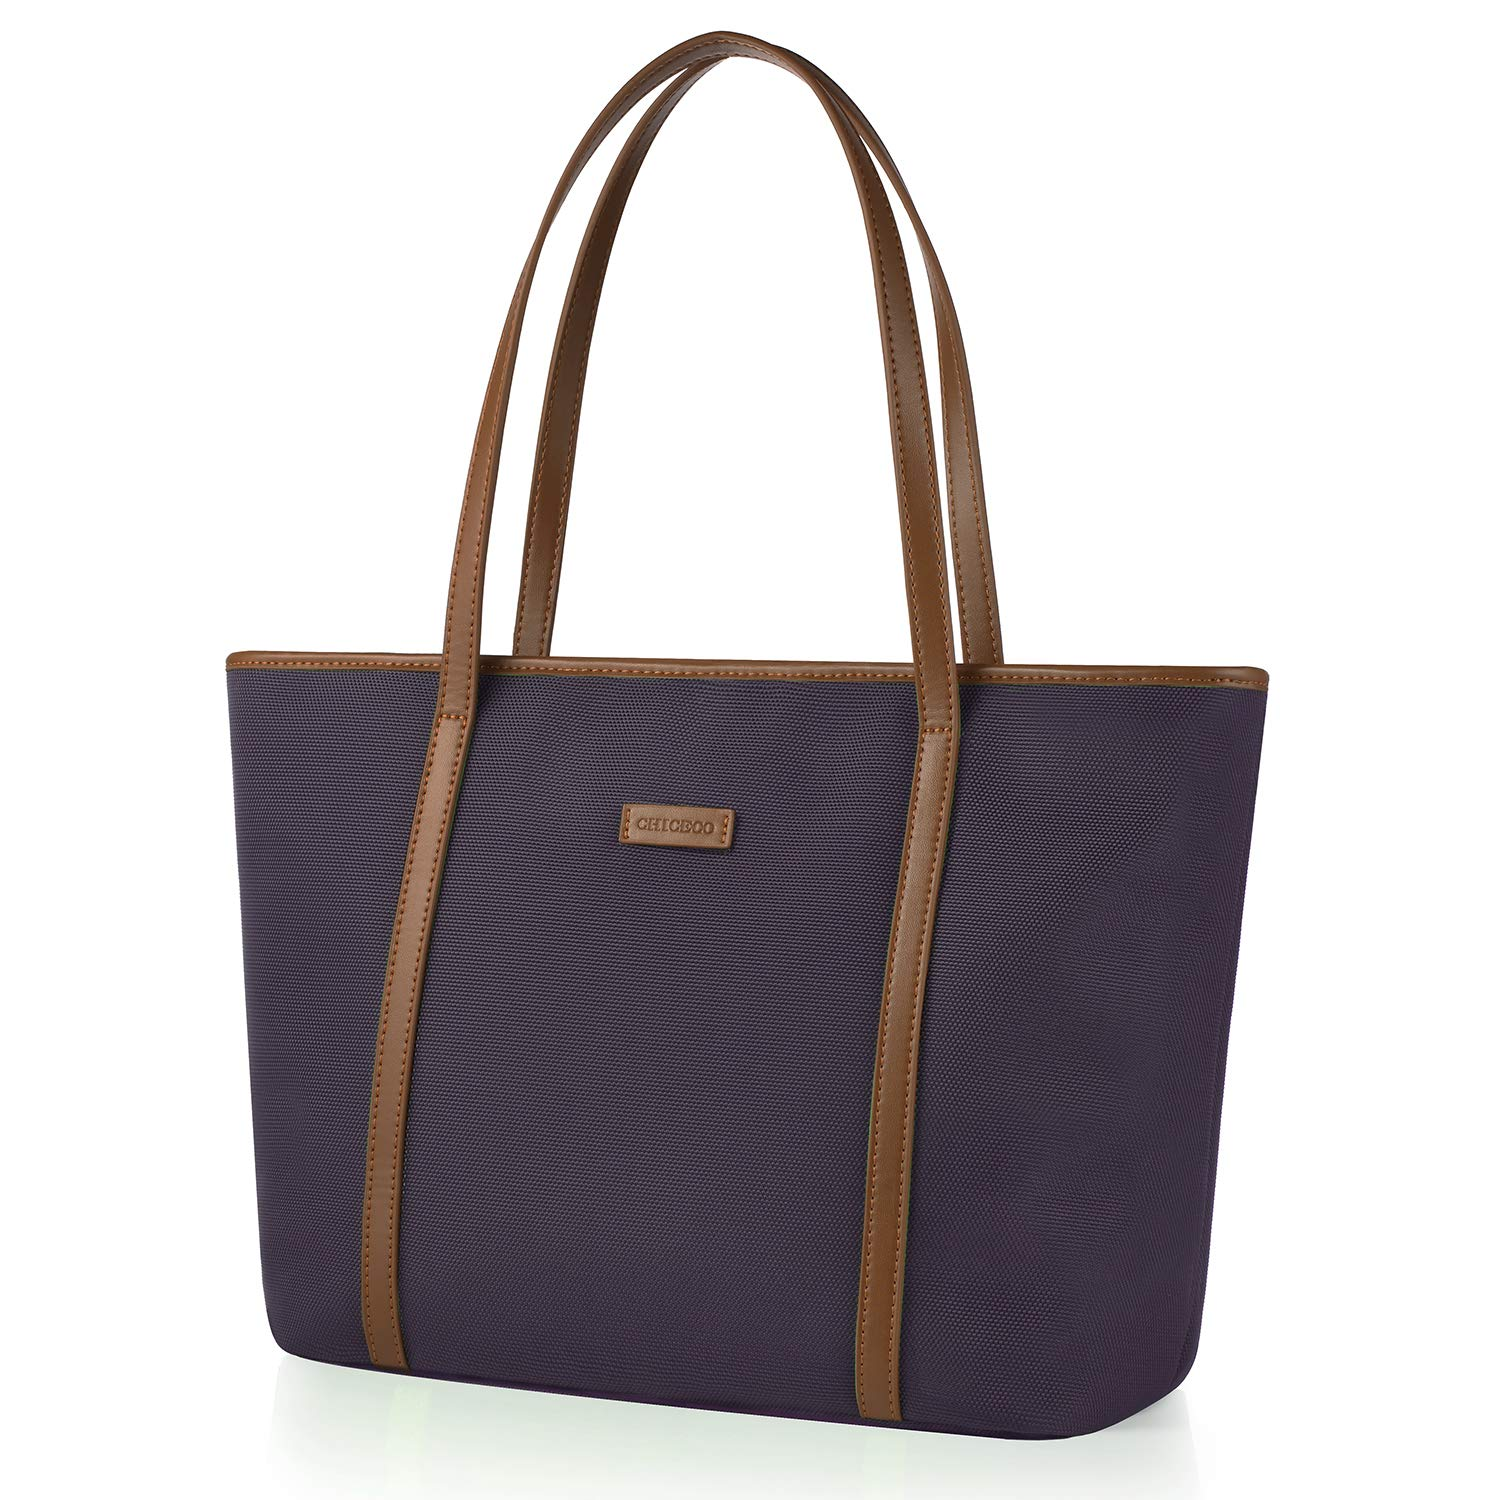 New Edition CHICECO Extra Large Tote Bag for Women with Exterior Pocket - Mysterious Purple